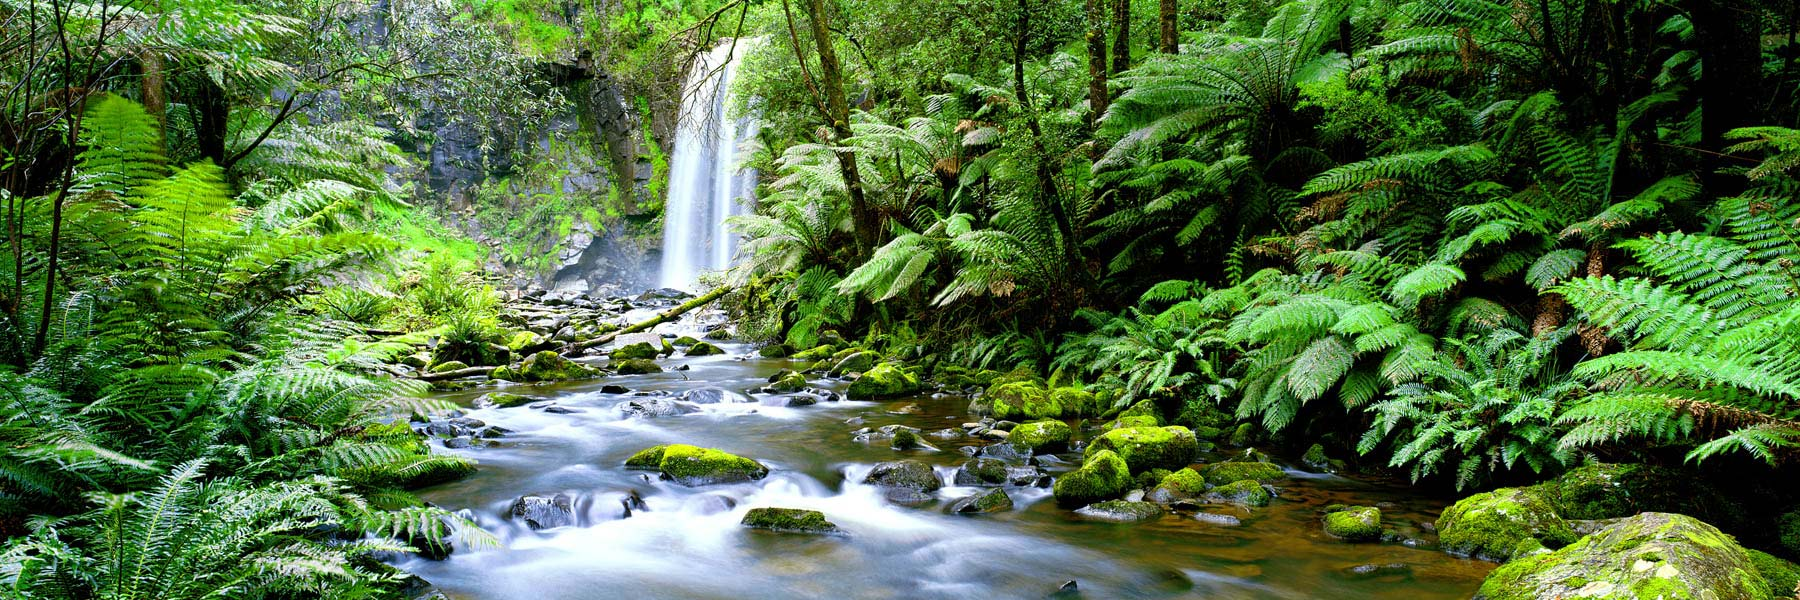 Water as smooth as velvet glides over moss-covered rocks in the Aire River, Vicroria, Australia.